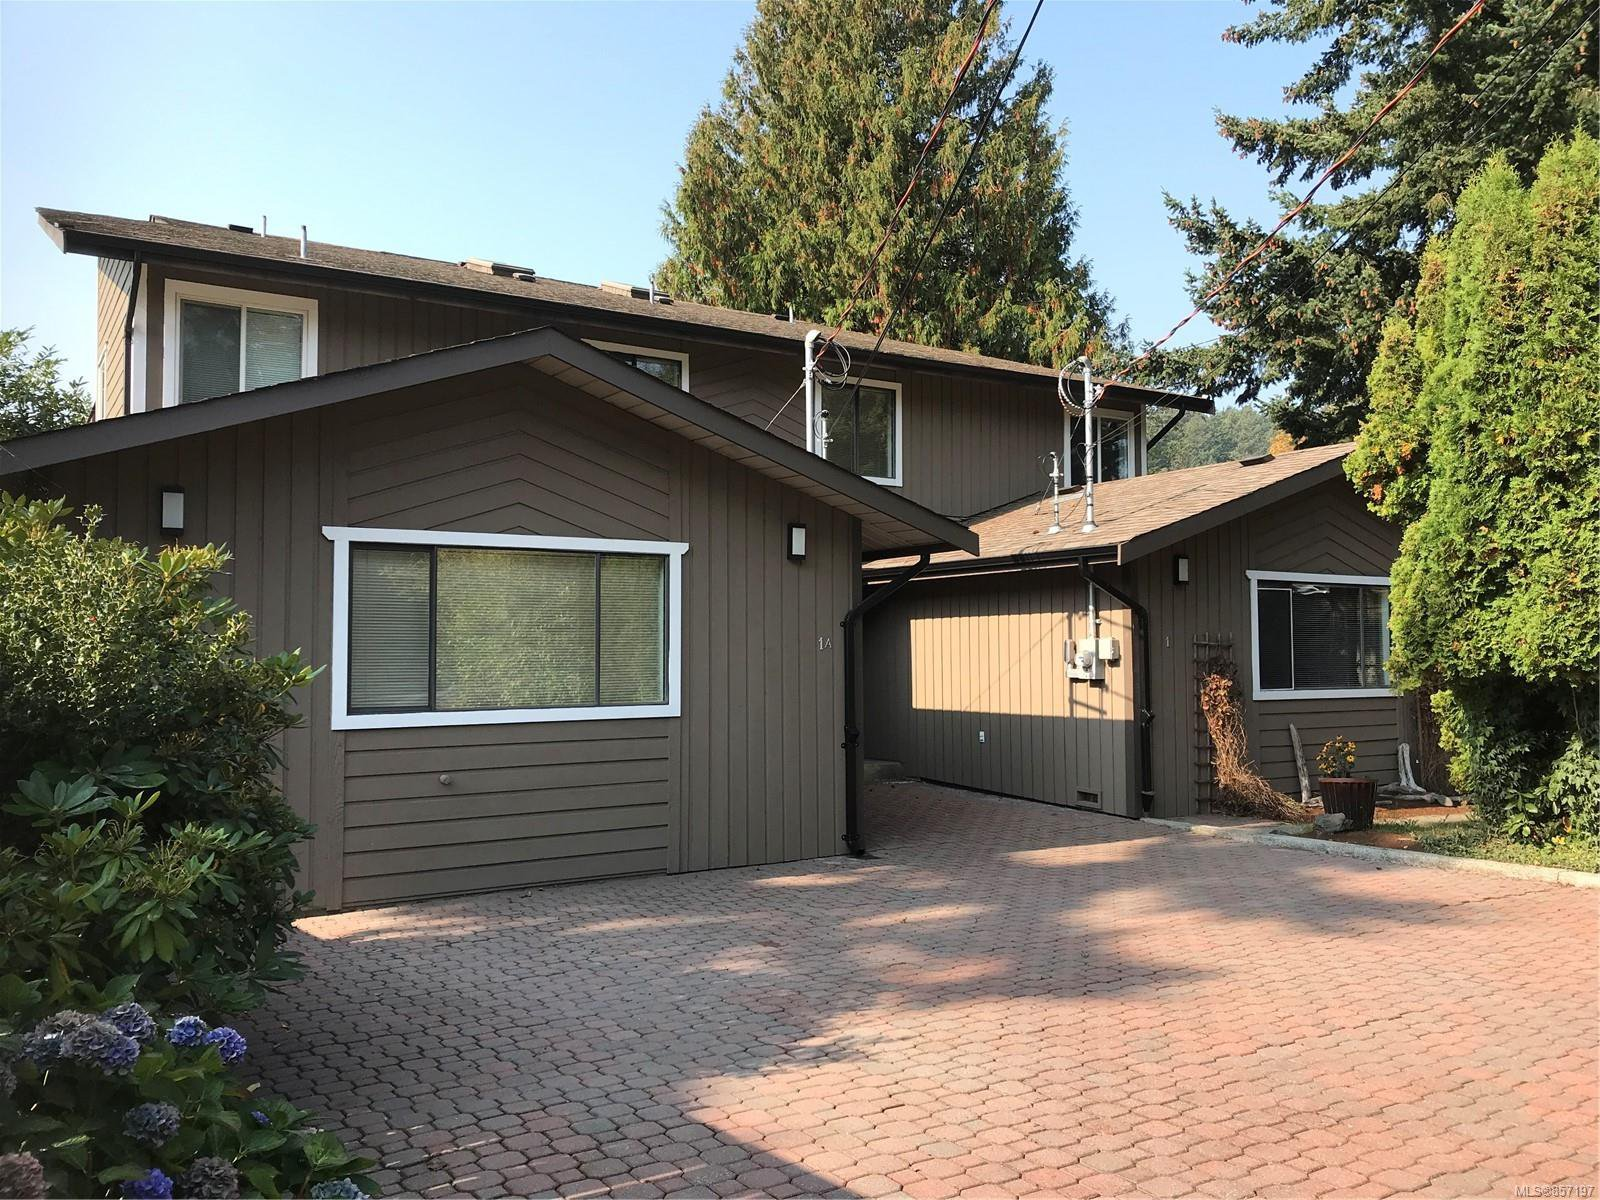 Main Photo: 1 Price Rd in : VR View Royal Full Duplex for sale (View Royal)  : MLS®# 857197